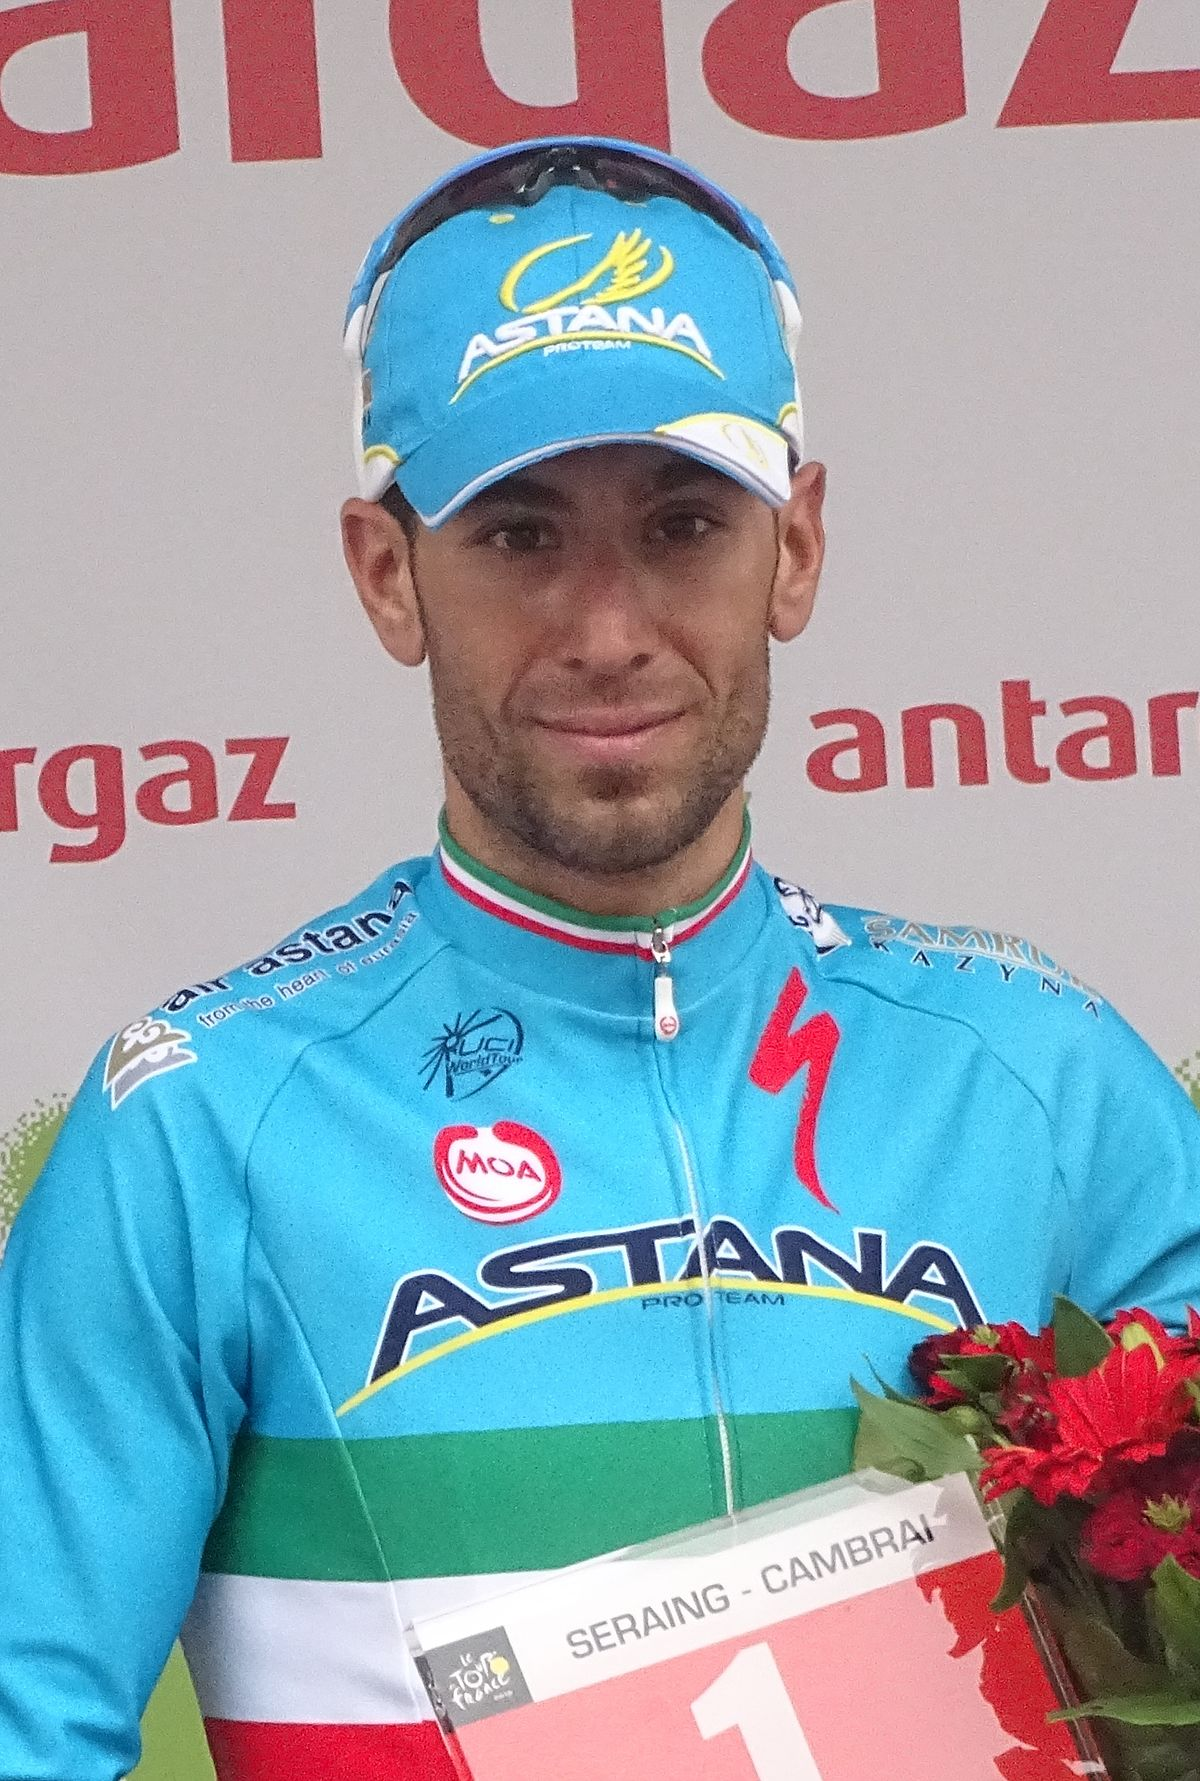 Vincenzo Nibali Wikipedia